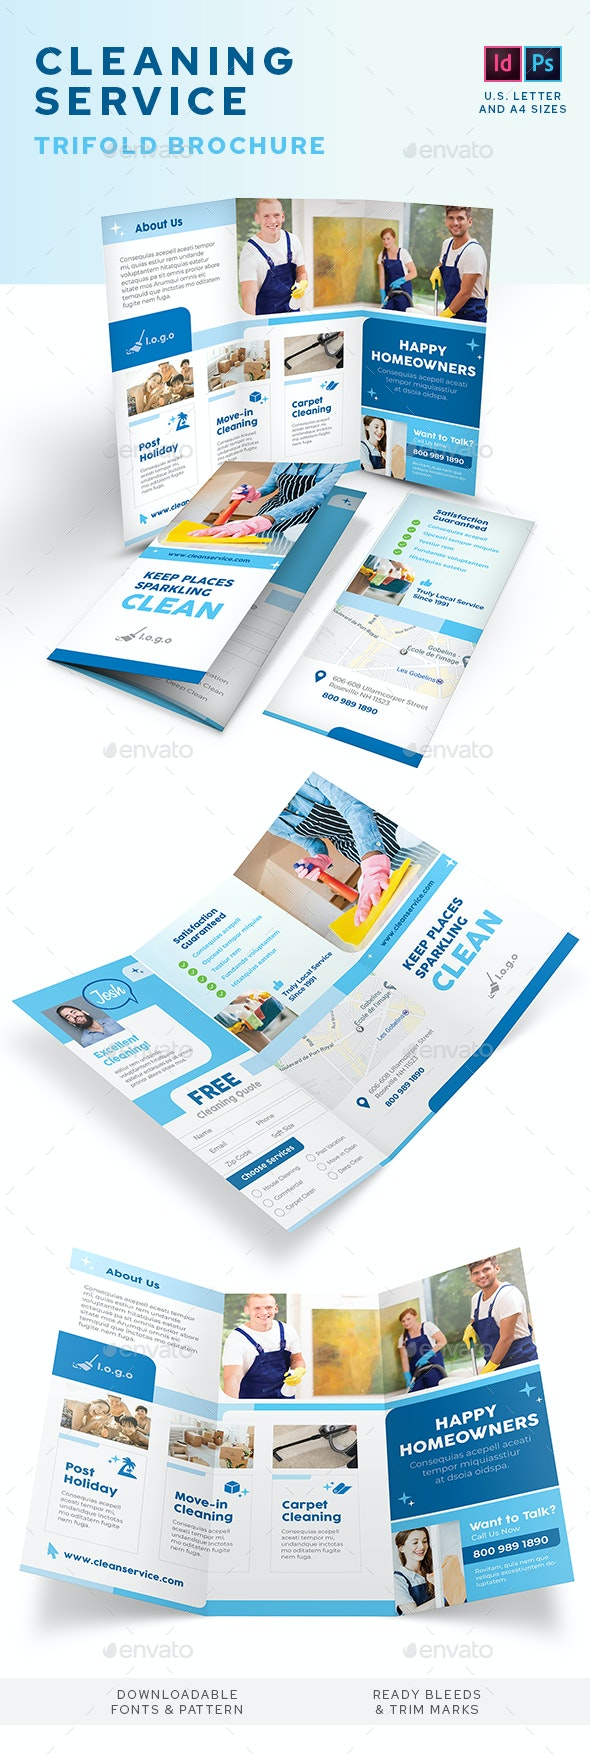 Cleaning Service Company Trifold Brochure - Informational Brochures